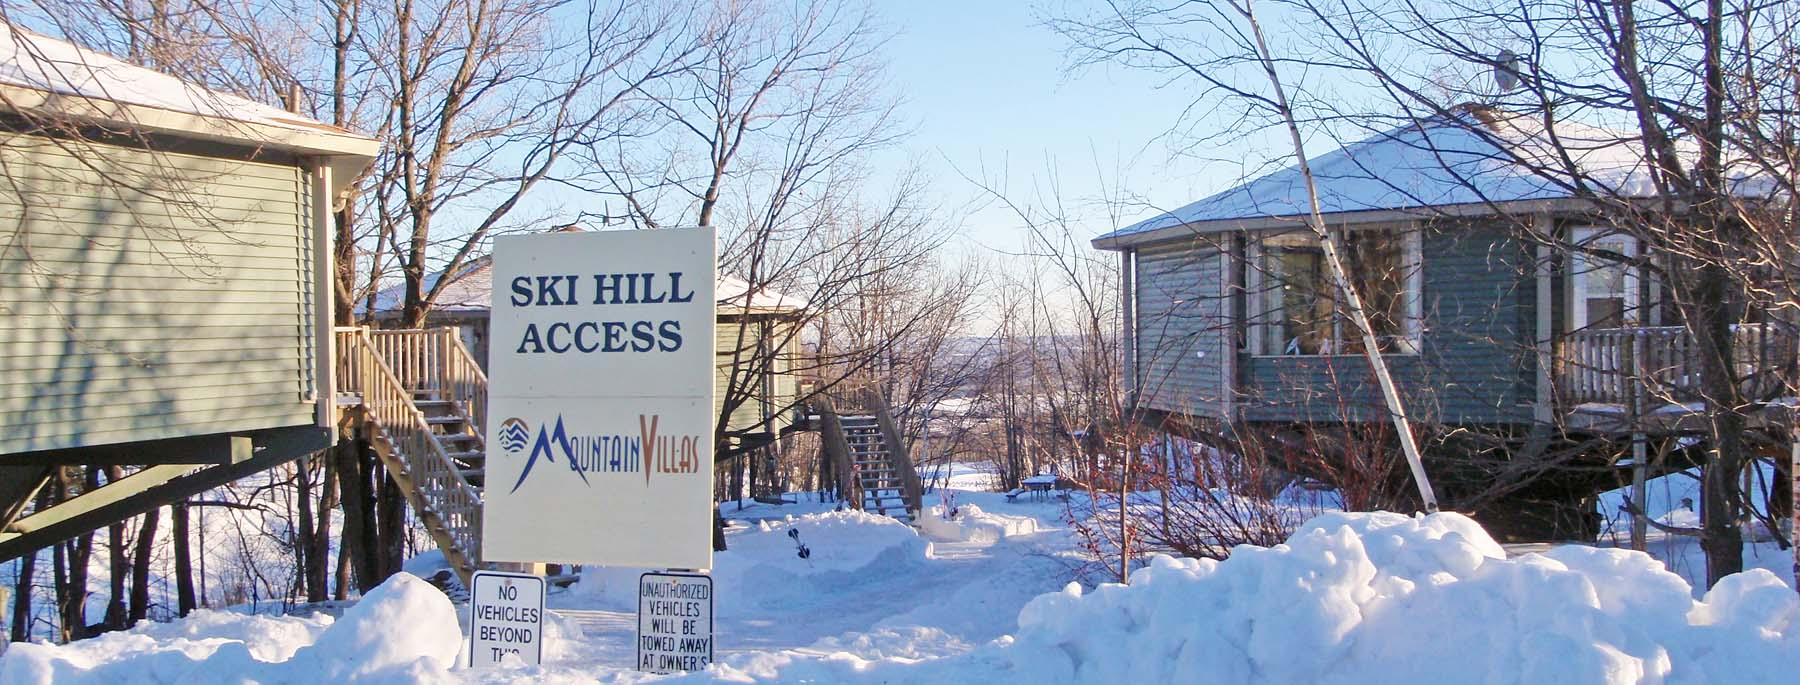 A ski hill access location at Mountain Villas